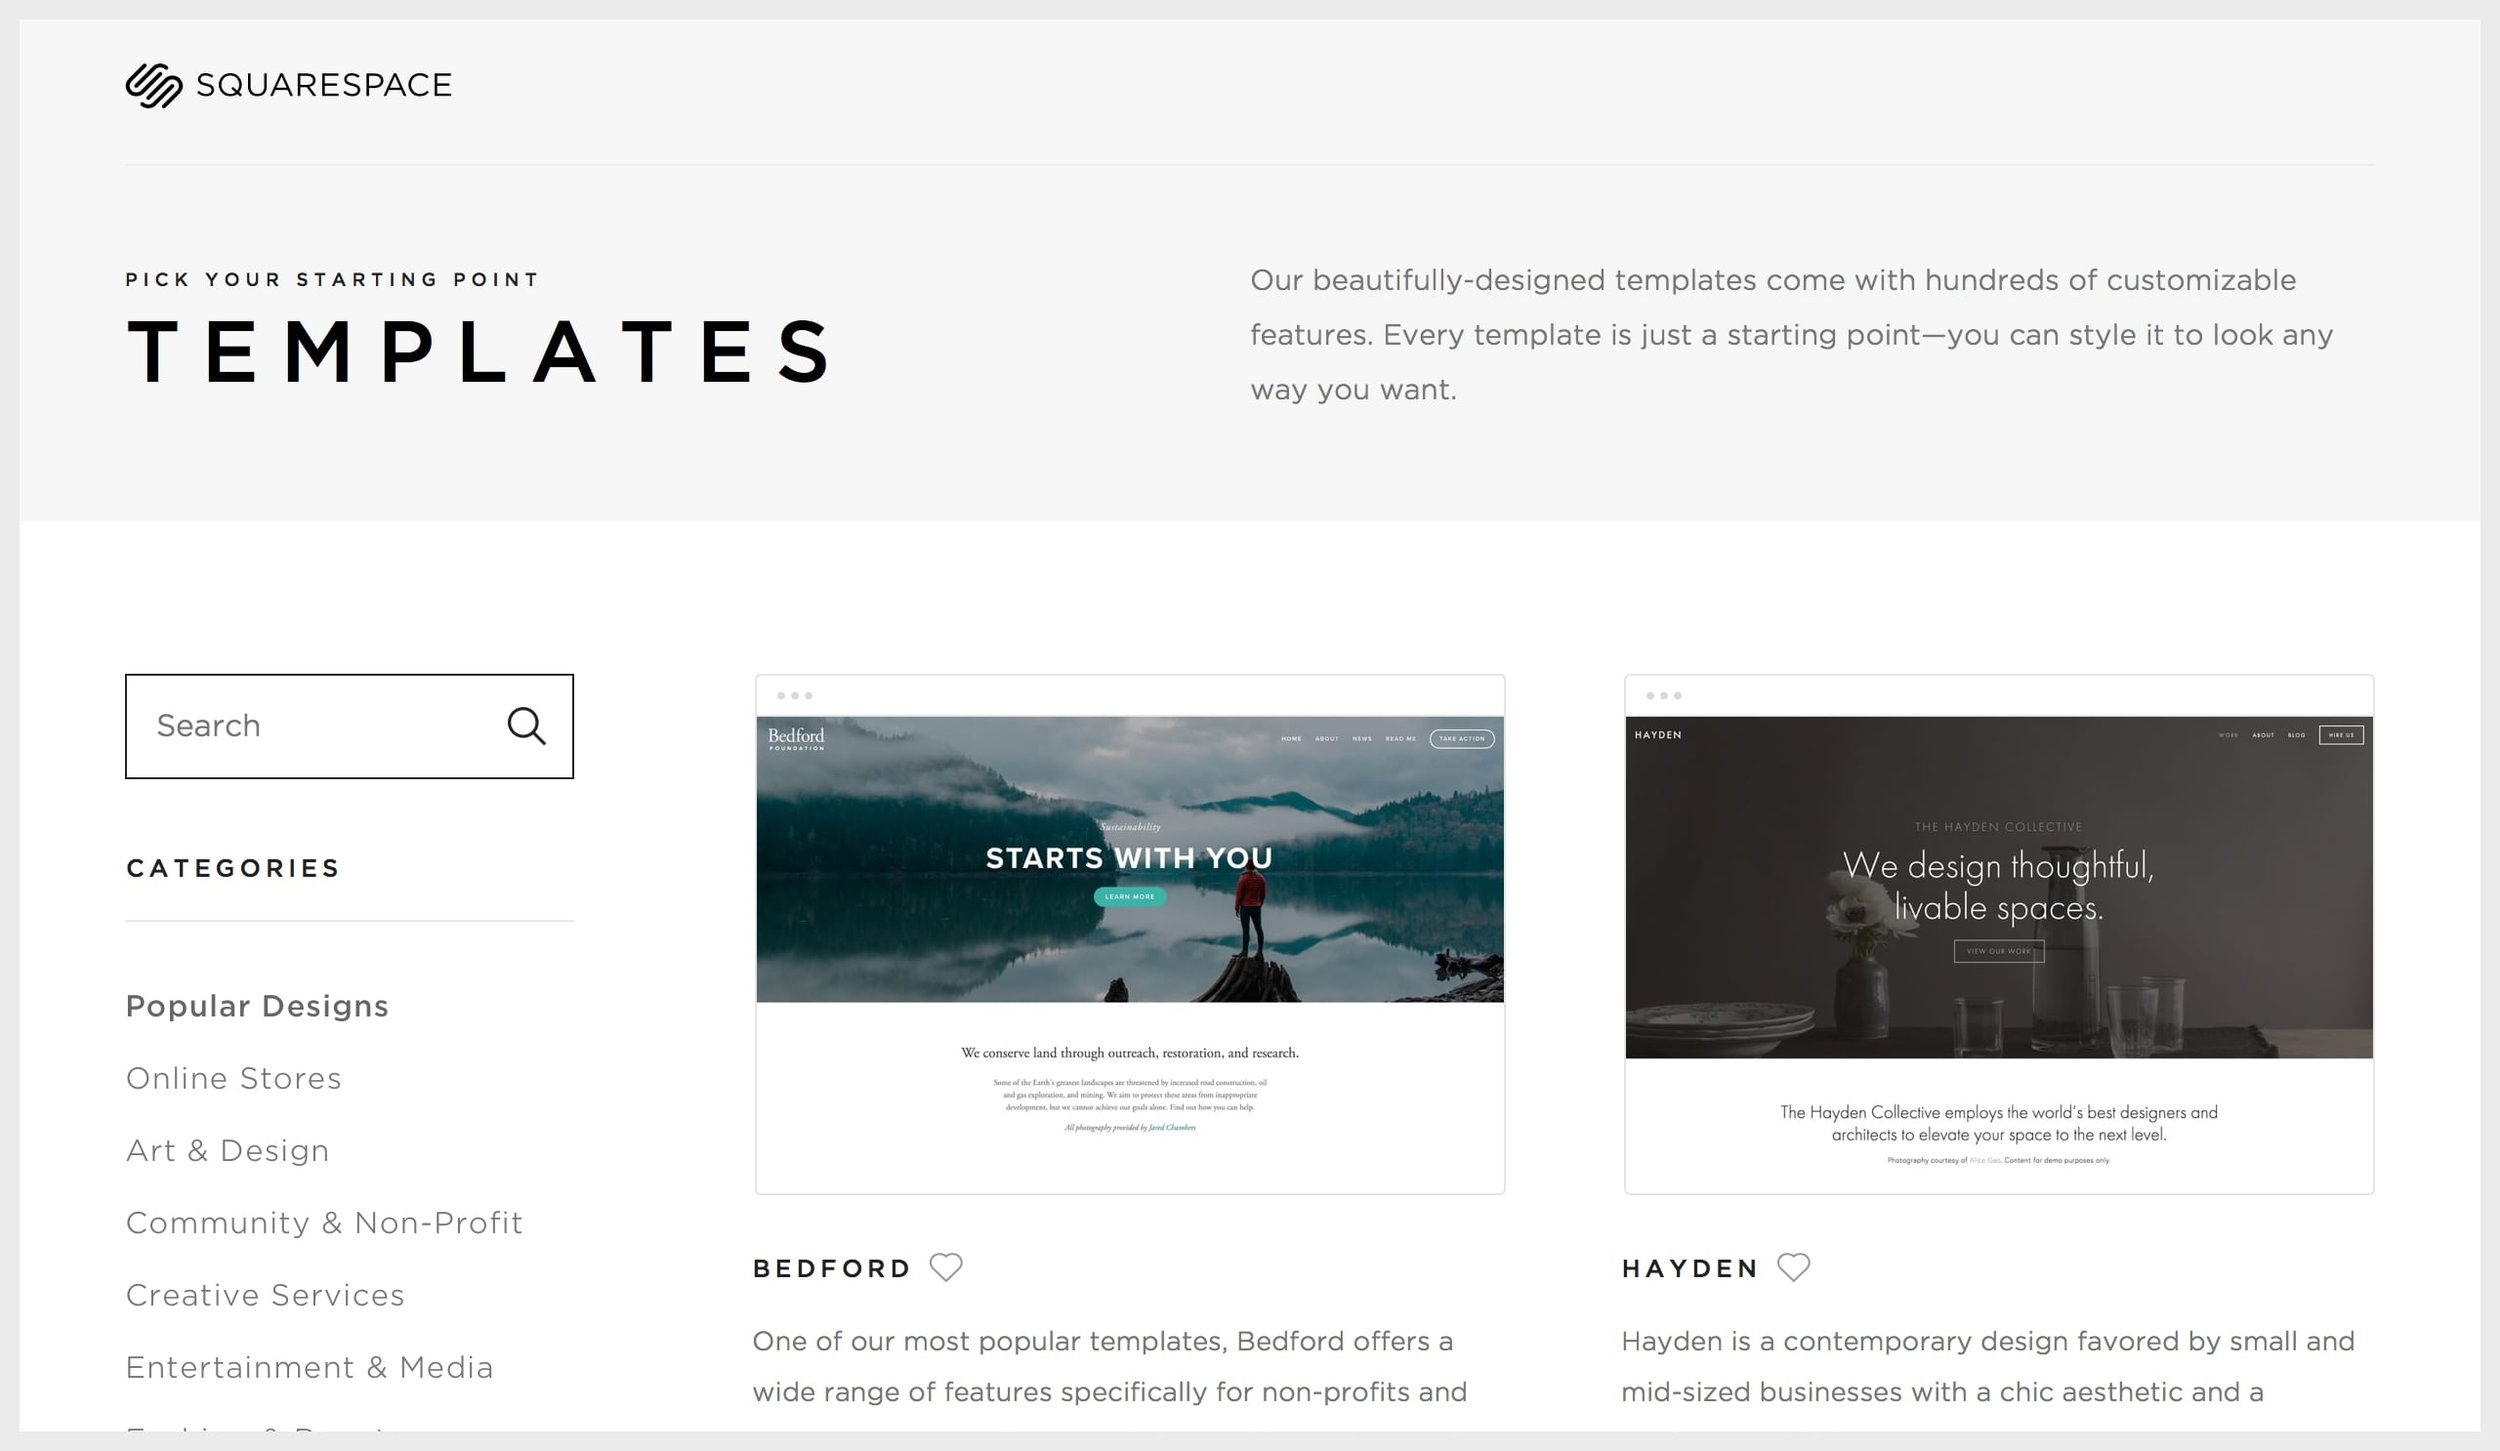 Squarespace's template categories